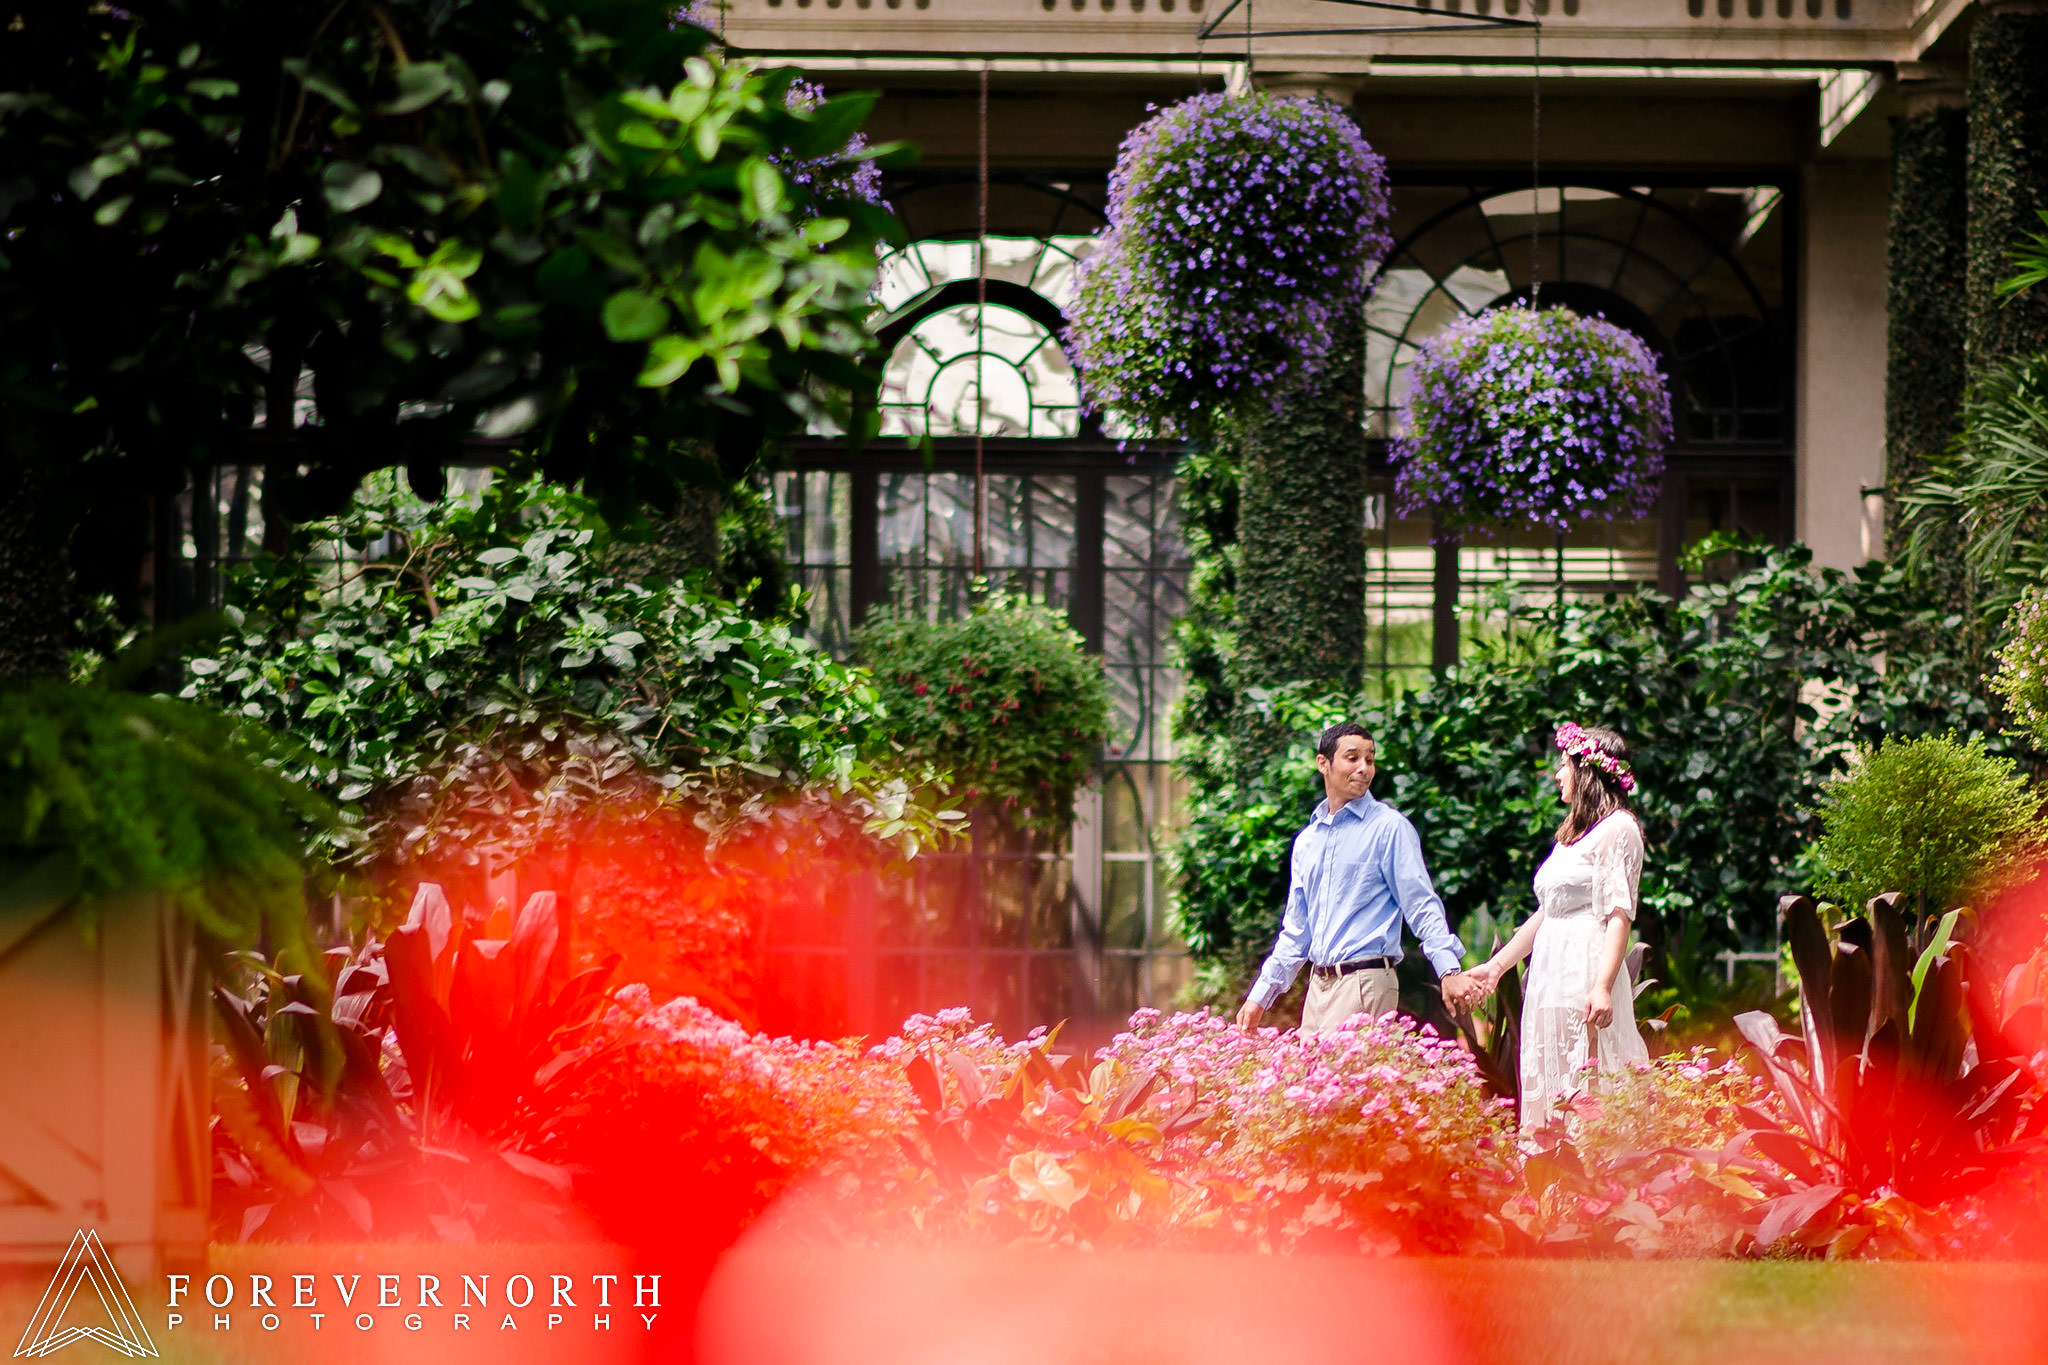 Longwood-Gardens-Engagement-Photos-10.JPG